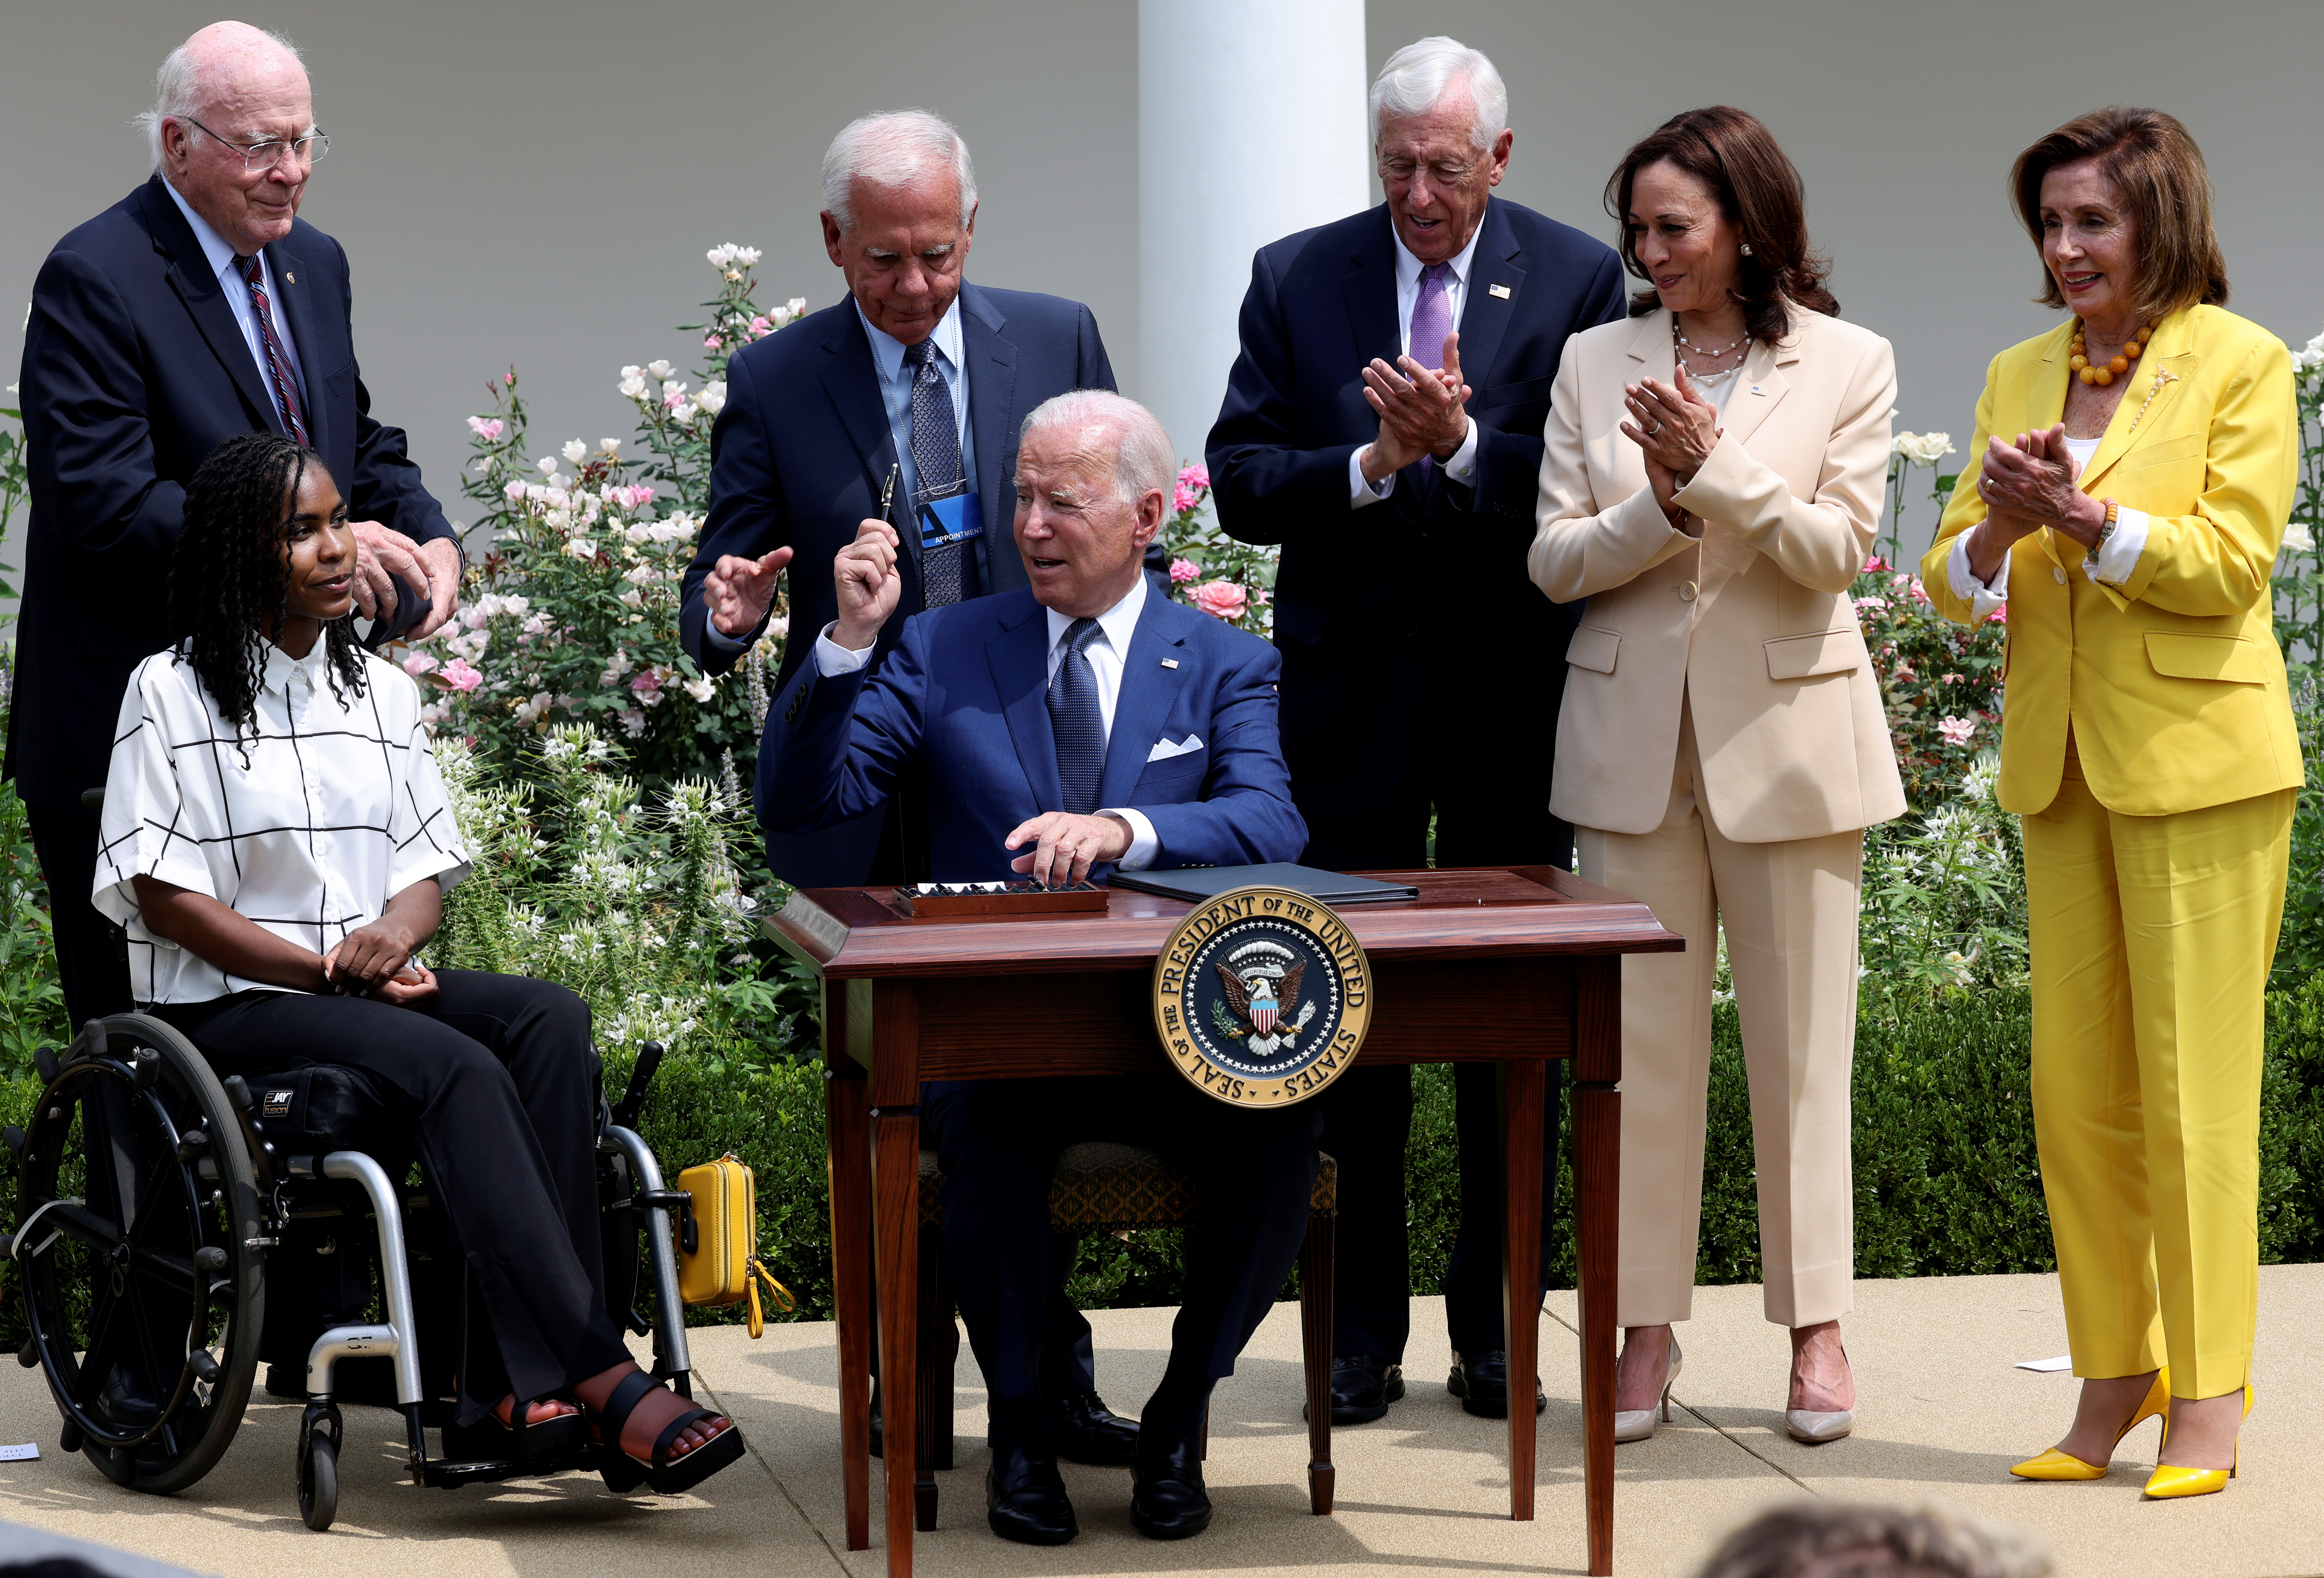 U.S. President Joe Biden is applauded after he signed a proclamation marking the 31st anniversary of the Americans with Disabilities Act (ADA) in the White House Rose Garden in Washington, U.S., July 26, 2021. REUTERS/Evelyn Hockstein